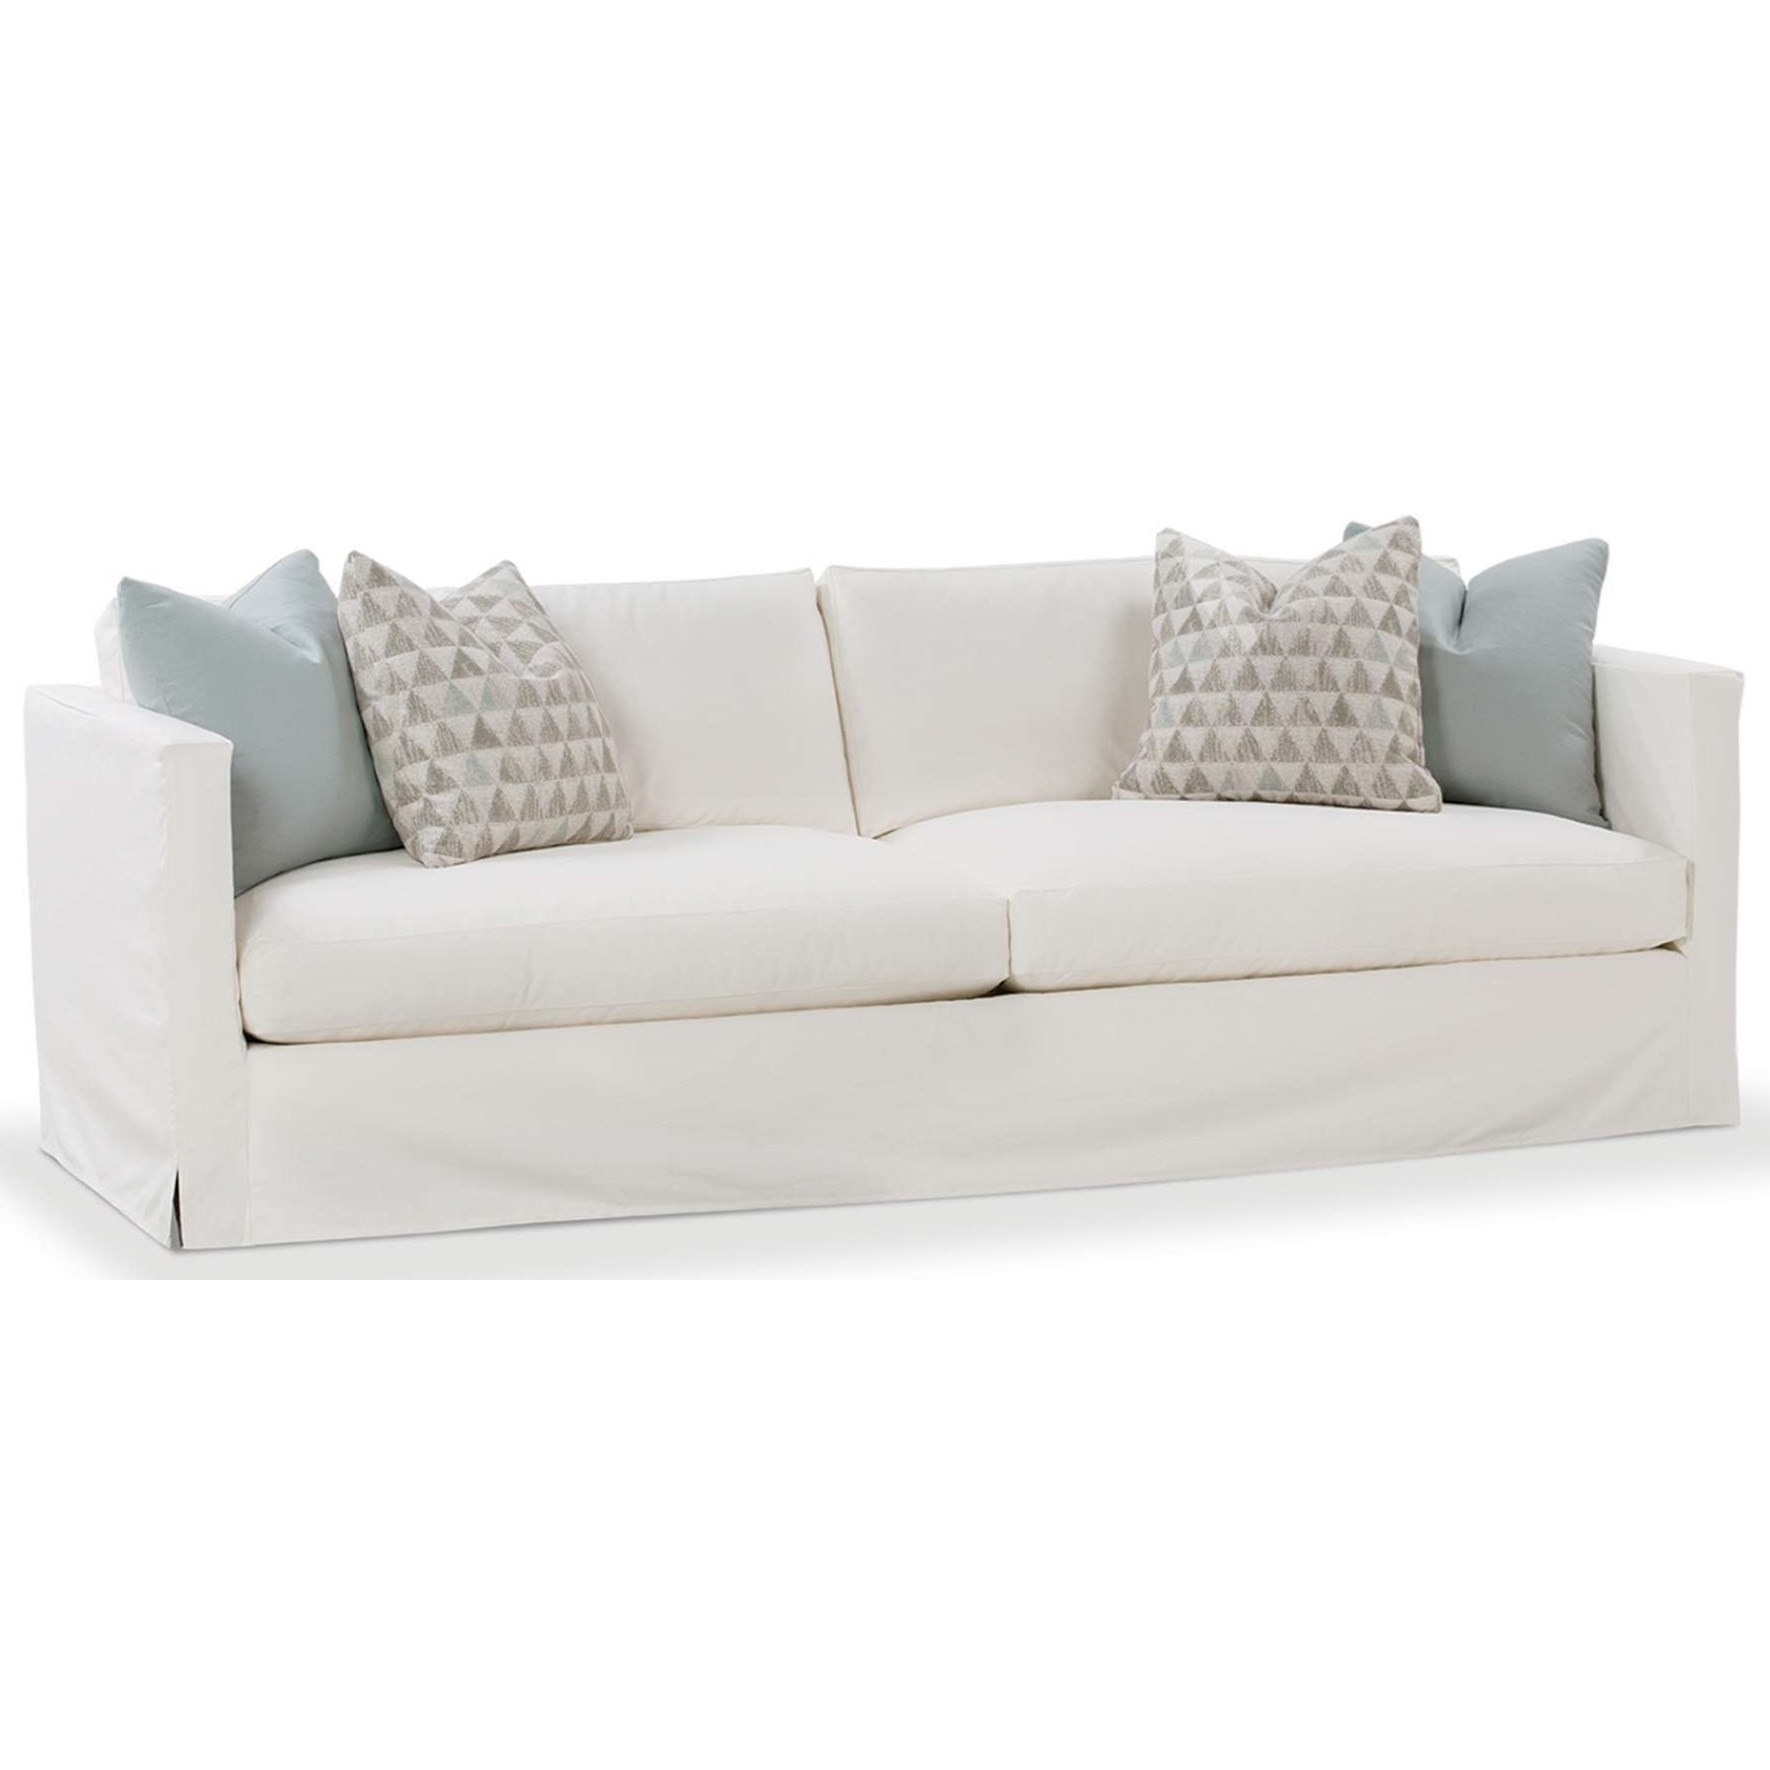 robin bruce dolly 84 u0026quot  slip cover sofa with 2 seat cushions